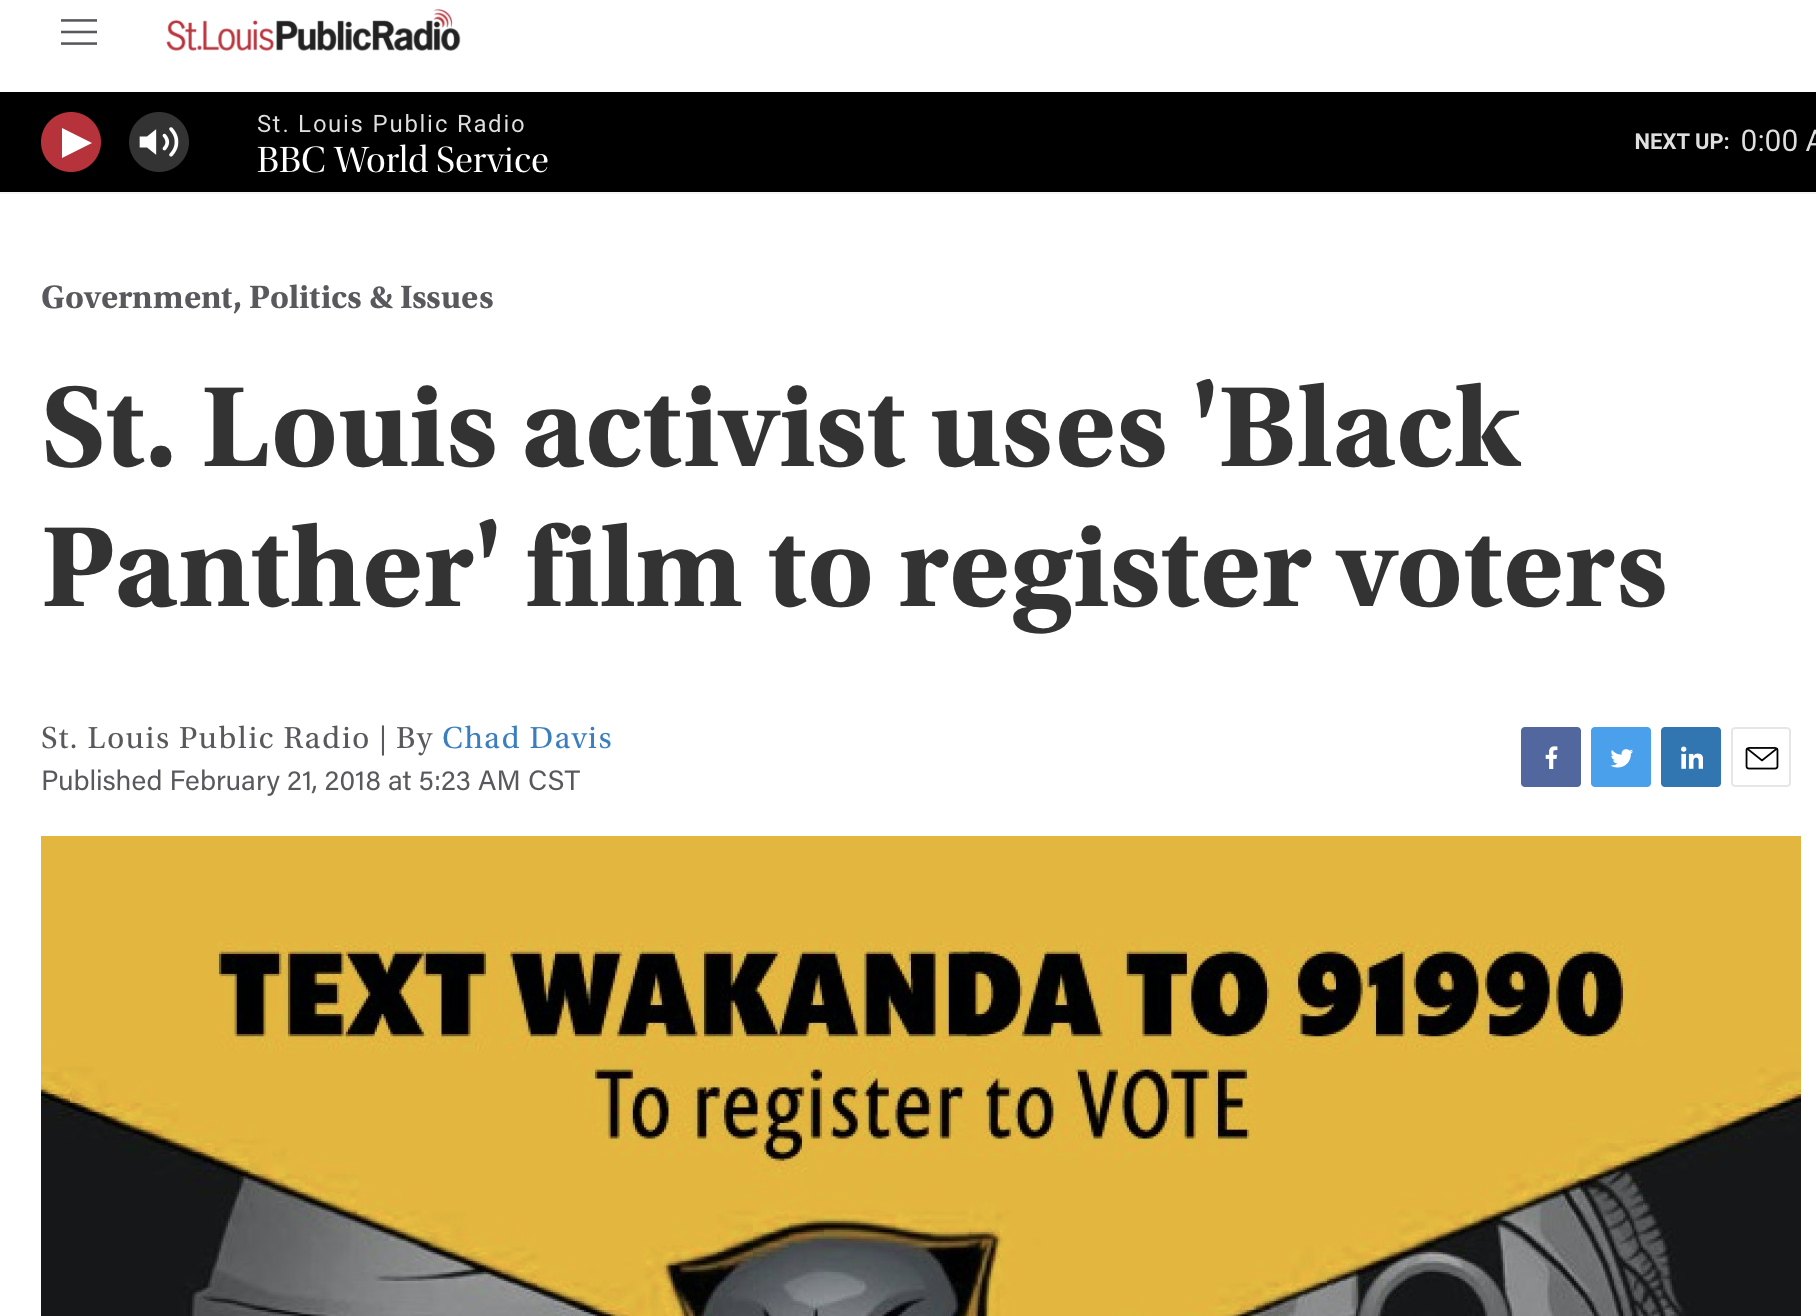 St. Louis activist uses 'Black Panther' film to register voters